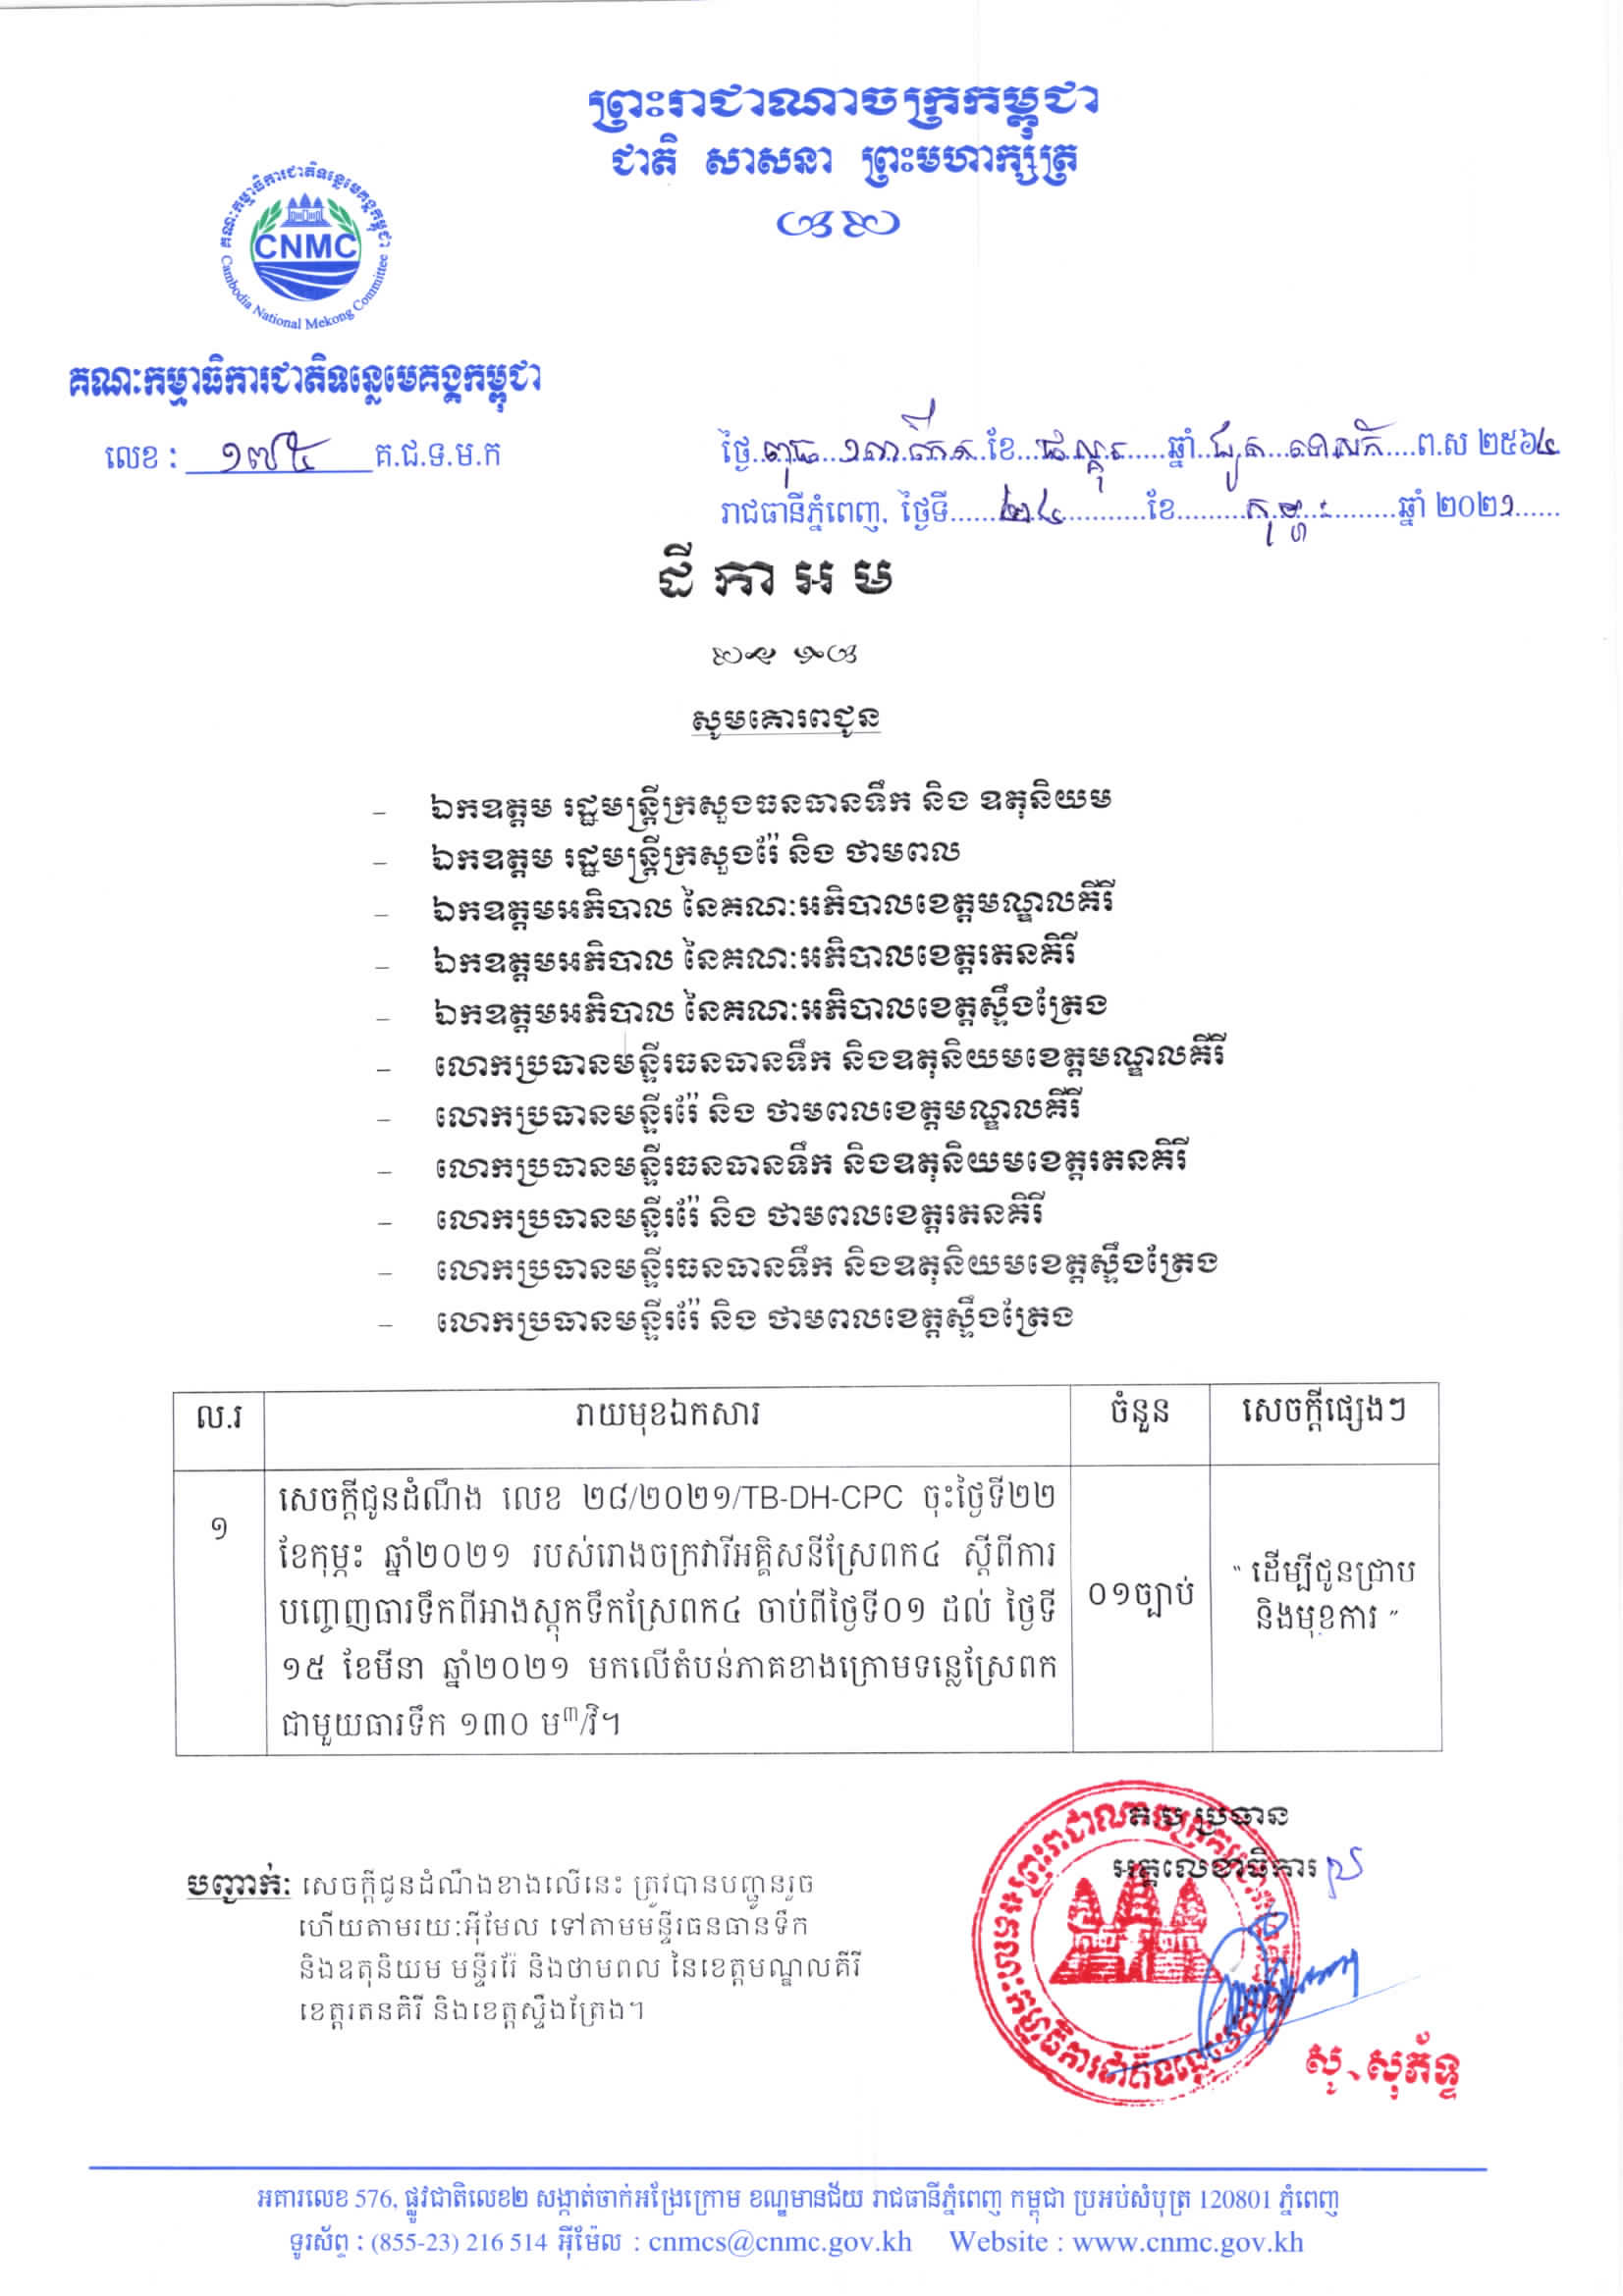 Notification On Water Release Schedule From Srepok 4 Reservoir to the lower area of Srepok River from 01-15 March 2021.